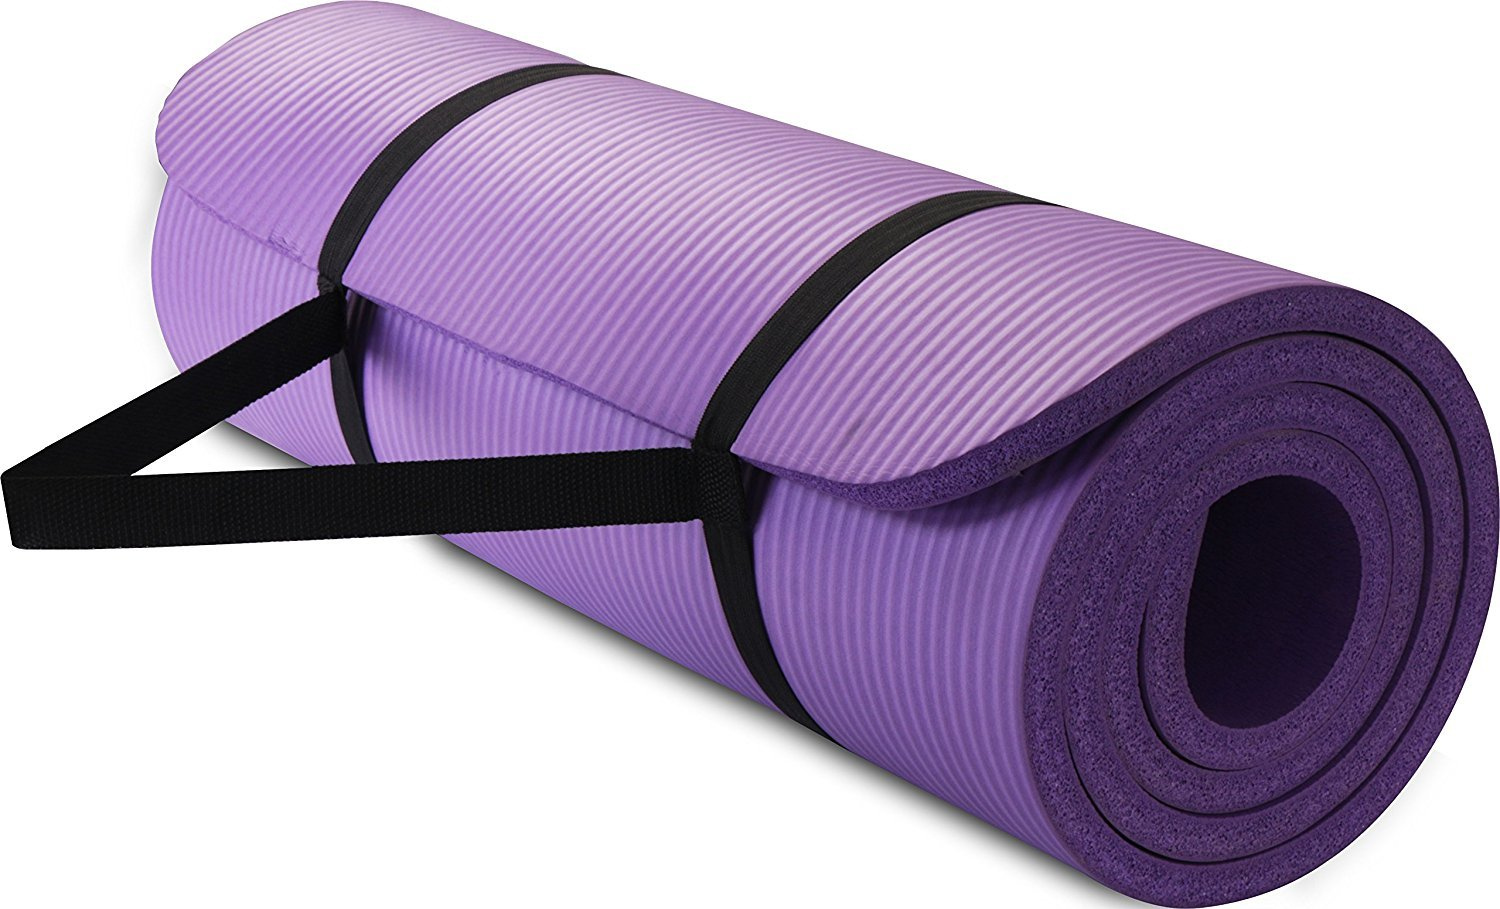 jul students mats your purple is what magazine studio web right for mat shutterstock mindful yoga